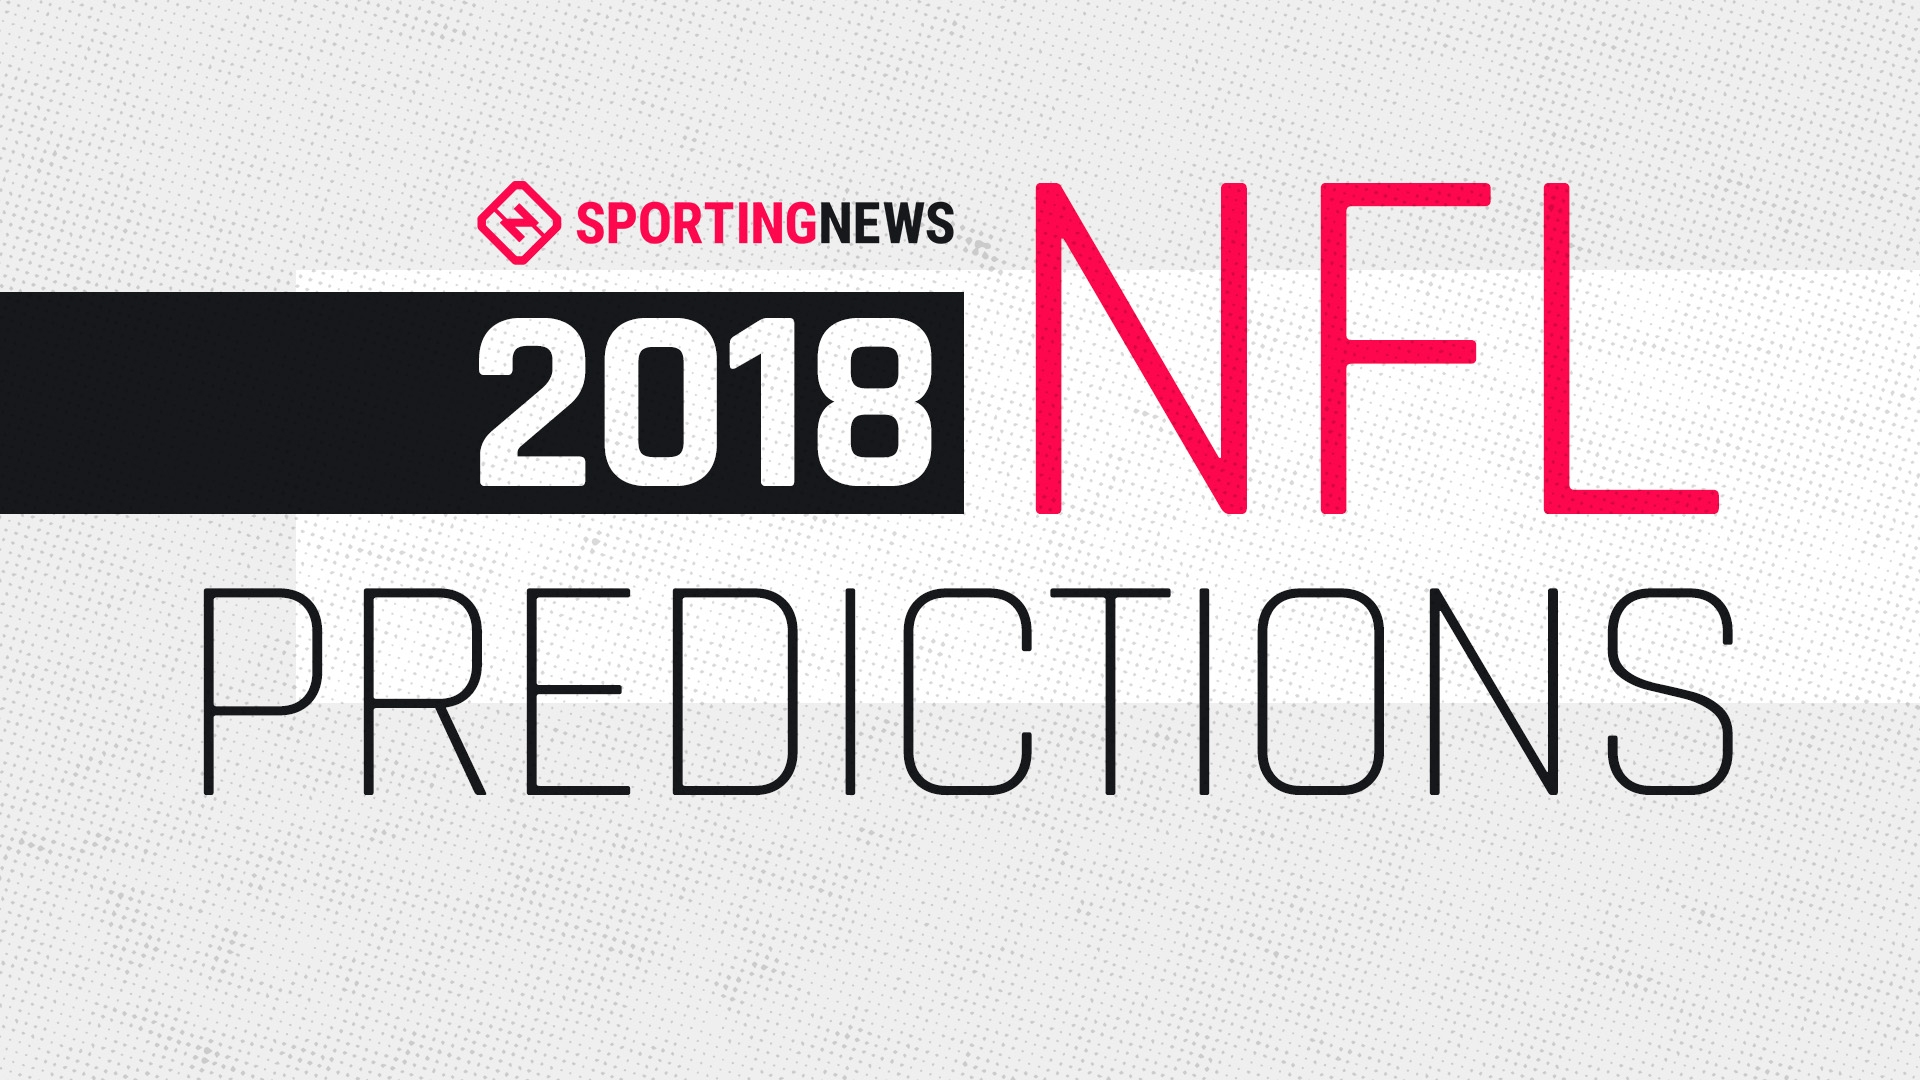 Nfl Predictions For 2018 Final Standings Playoff Projections